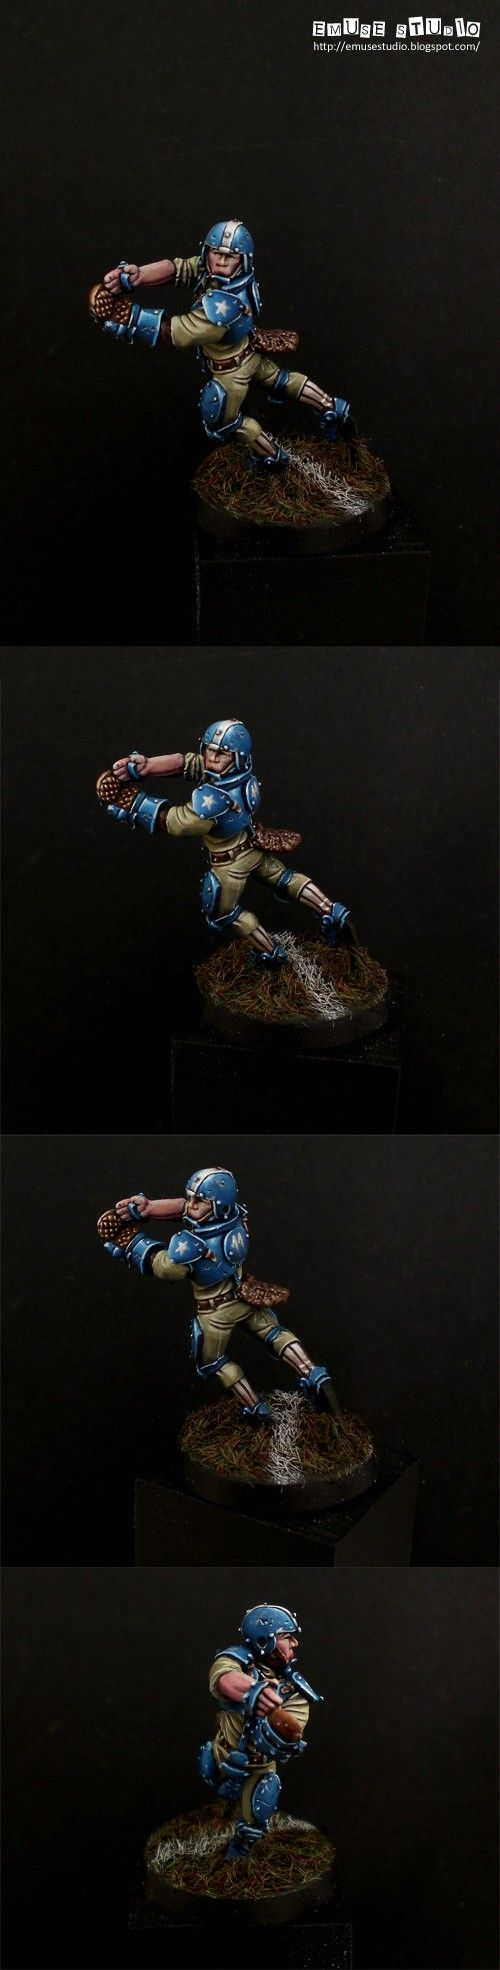 Blood Bowl Human Player.... with obvious Diving Catch skill?